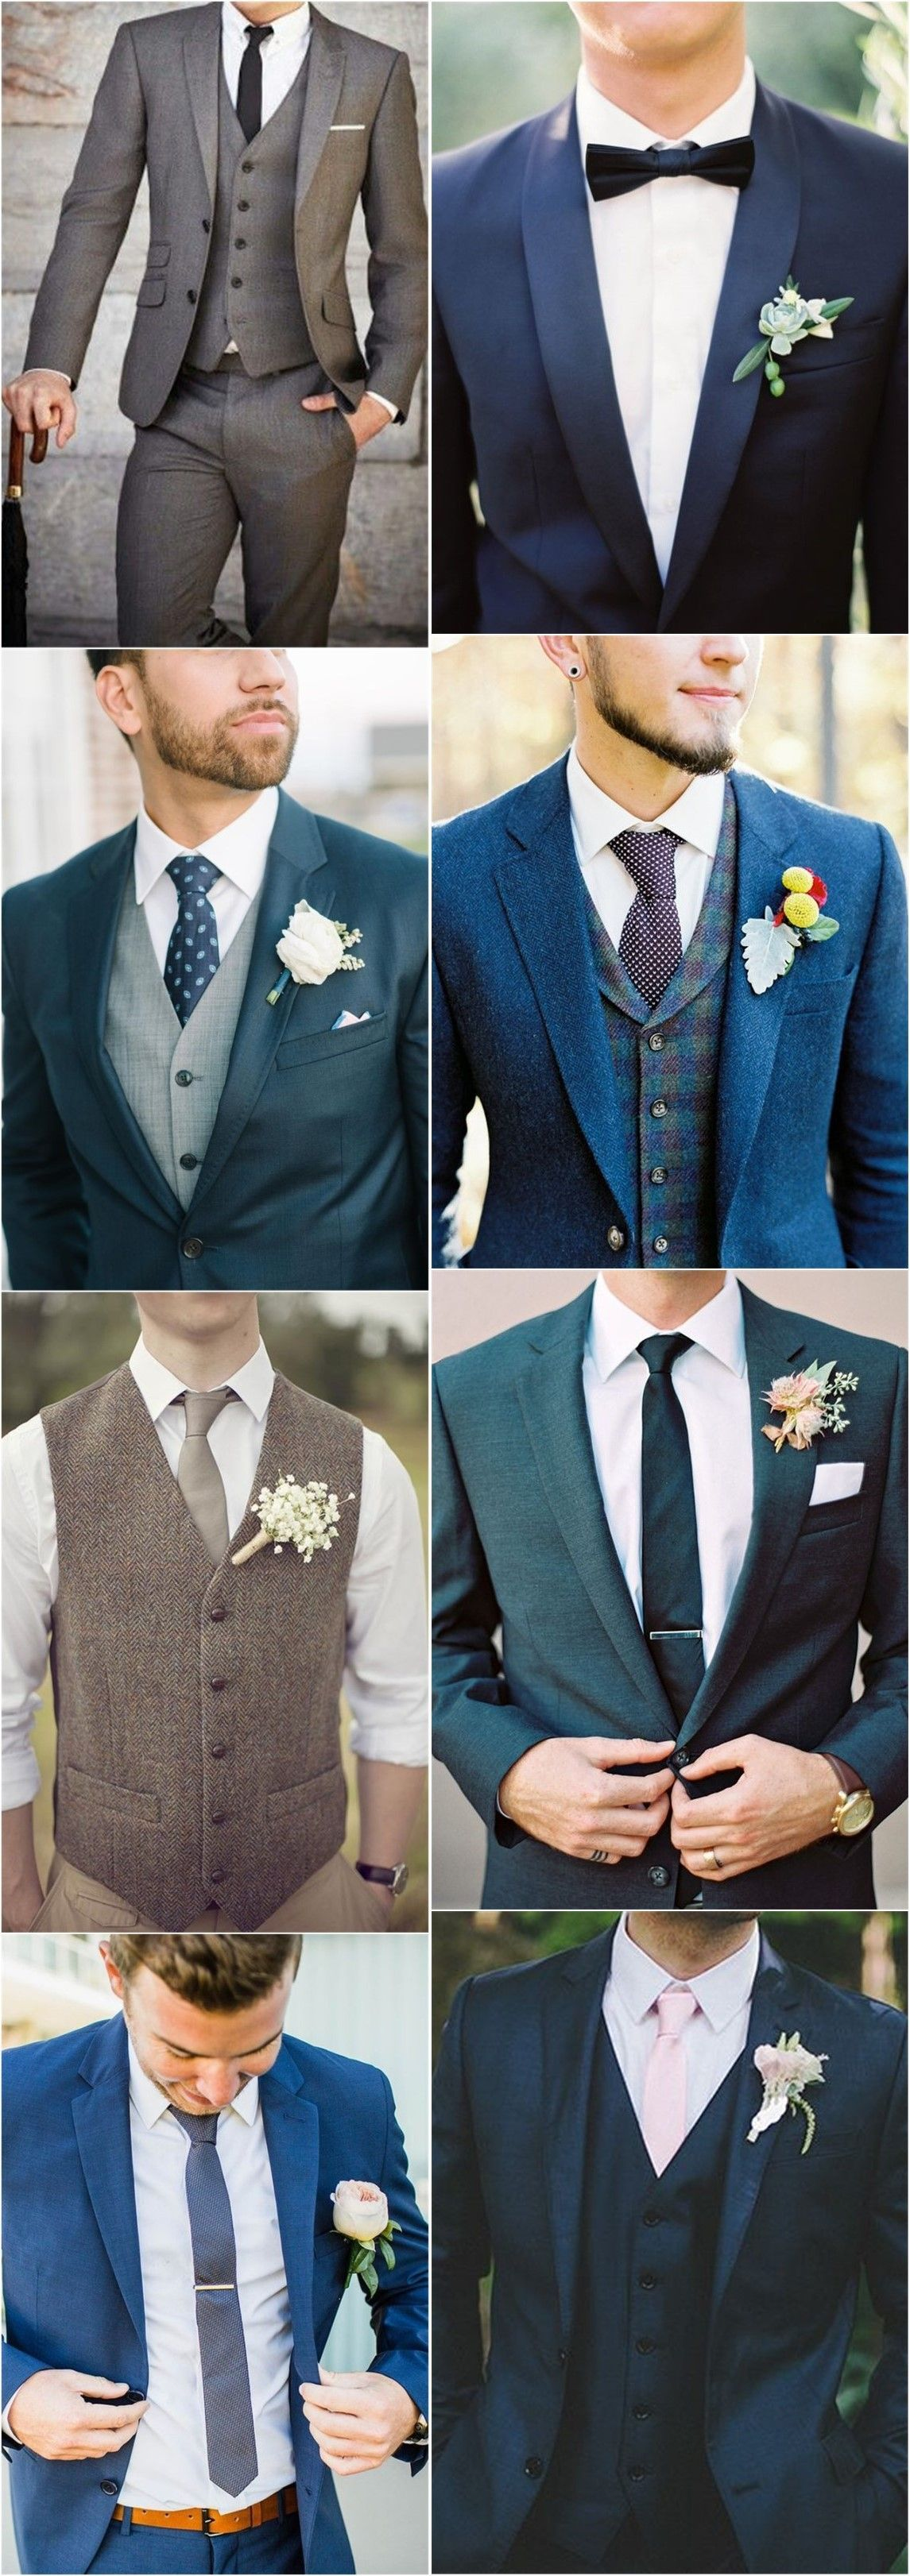 Wedding ideas groom groom suit that express your unique